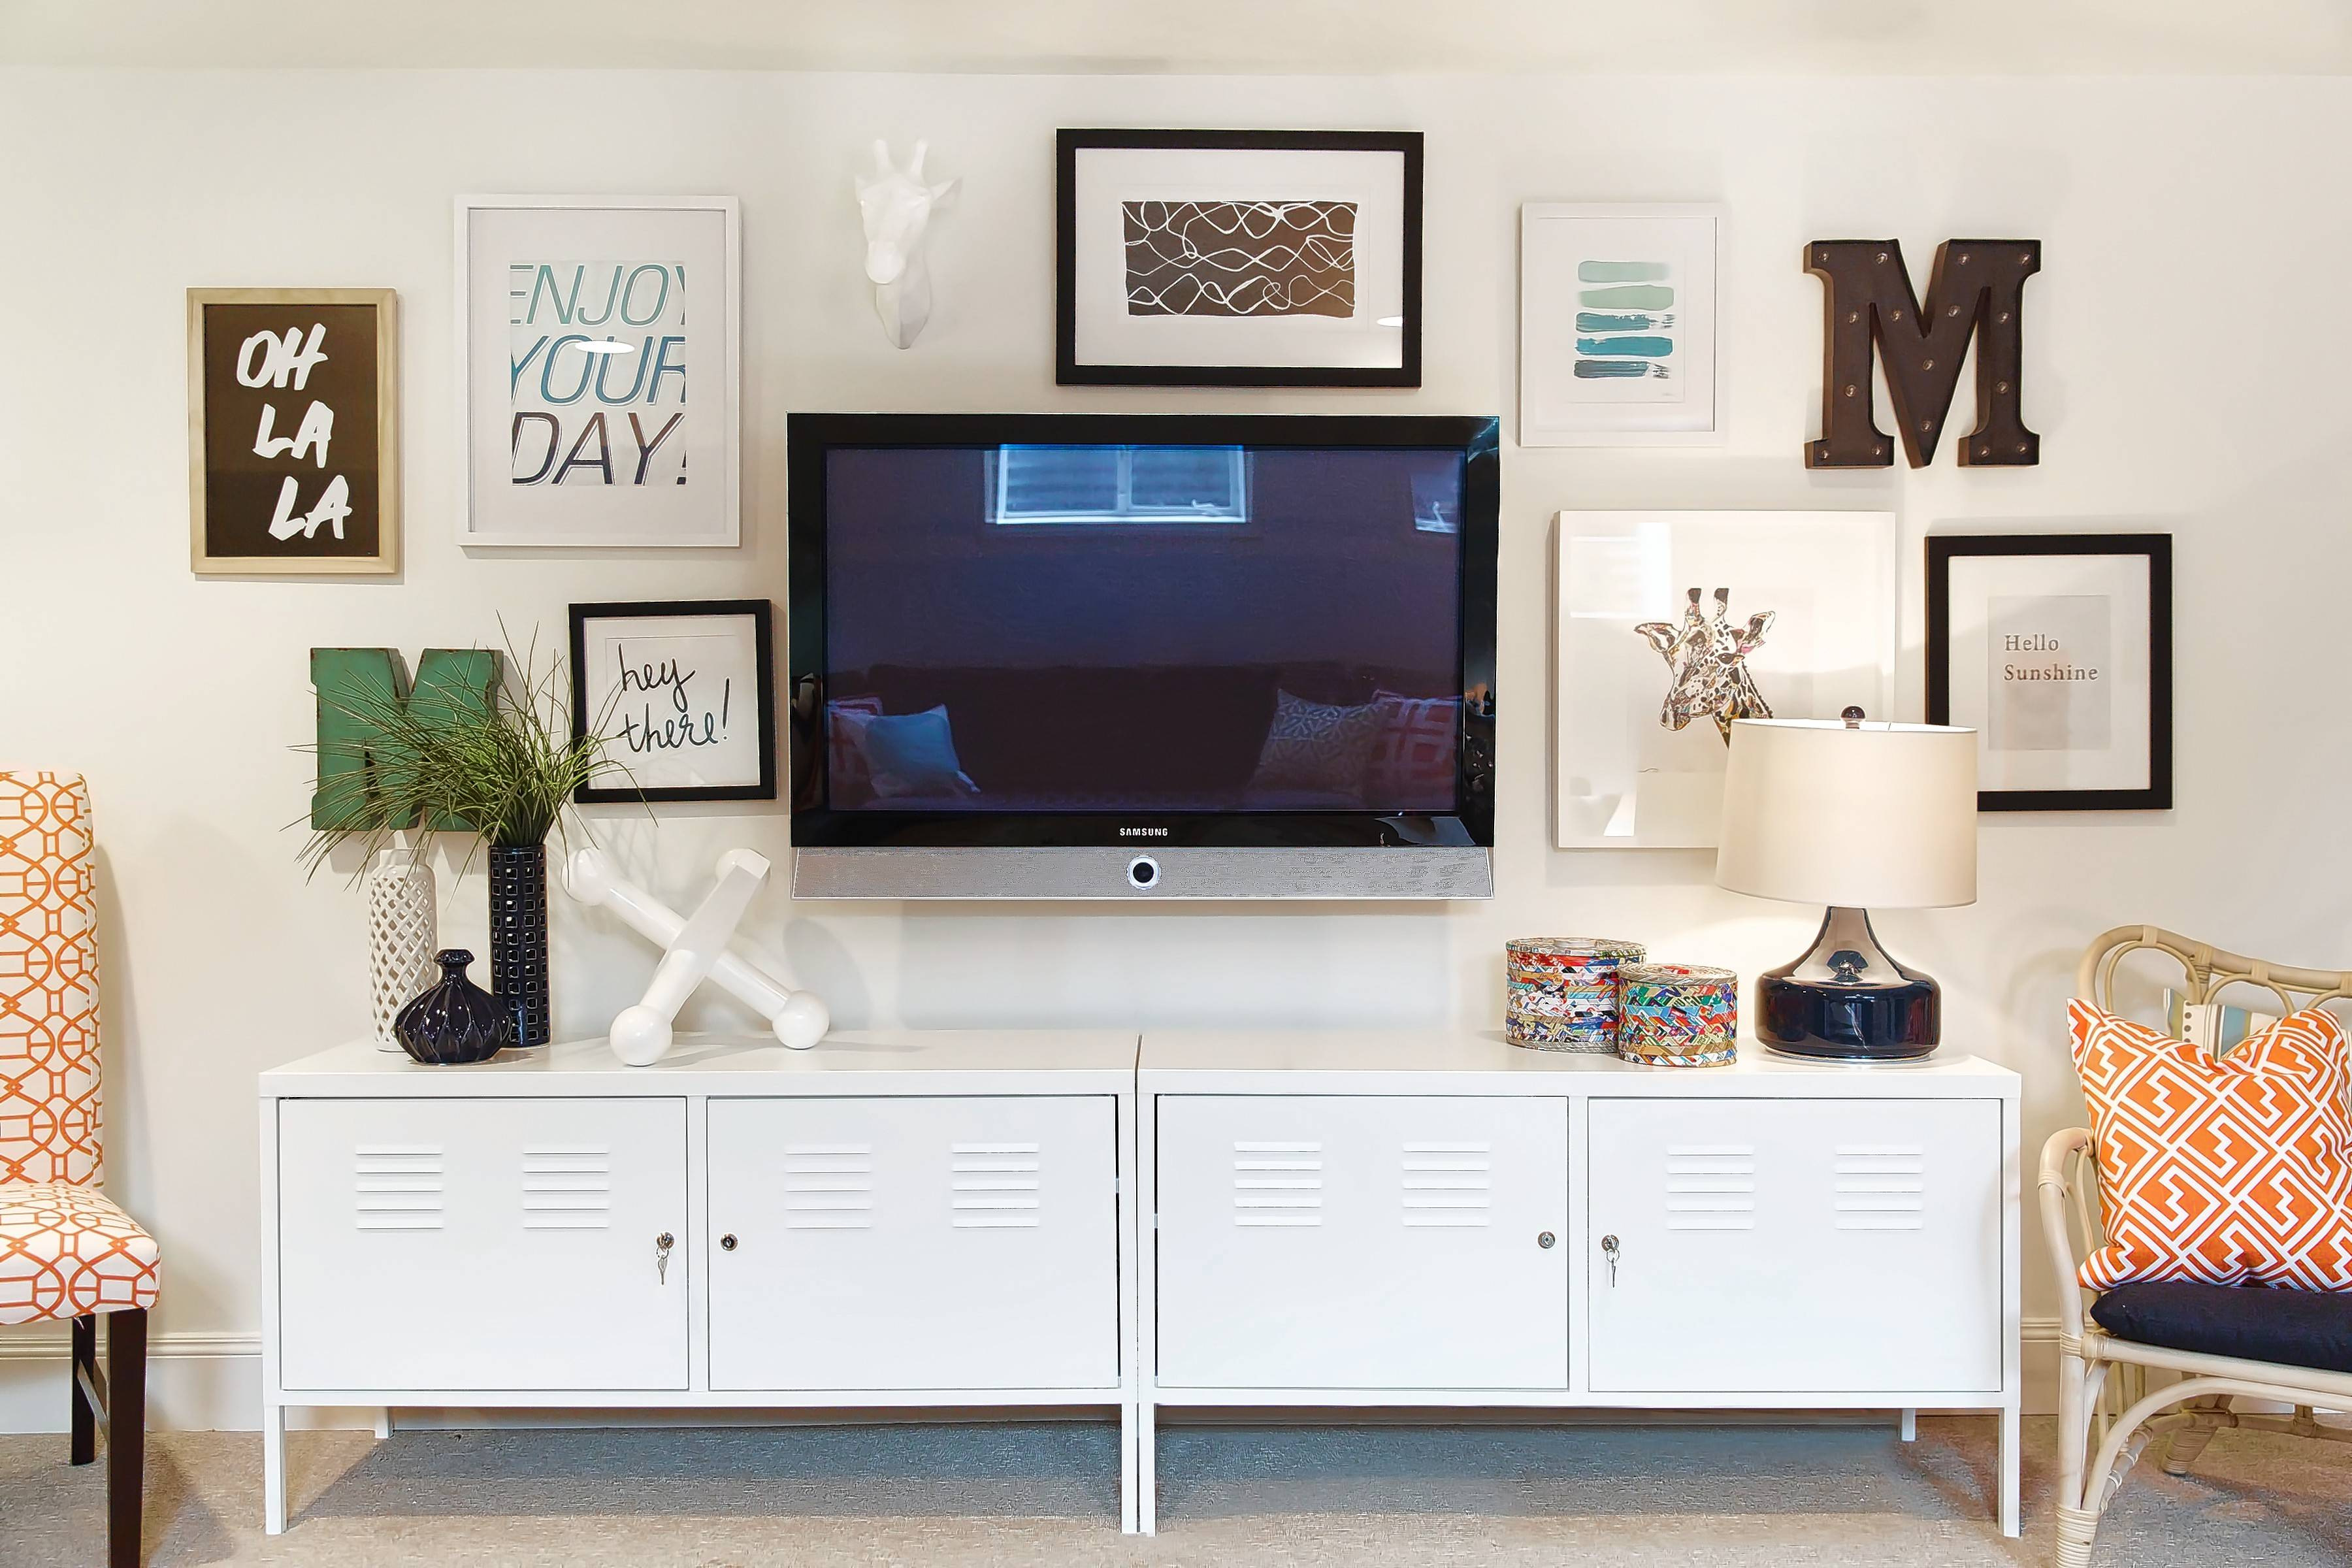 Making your TV part of a gallery wall will lessen its visual impact on the room's design.